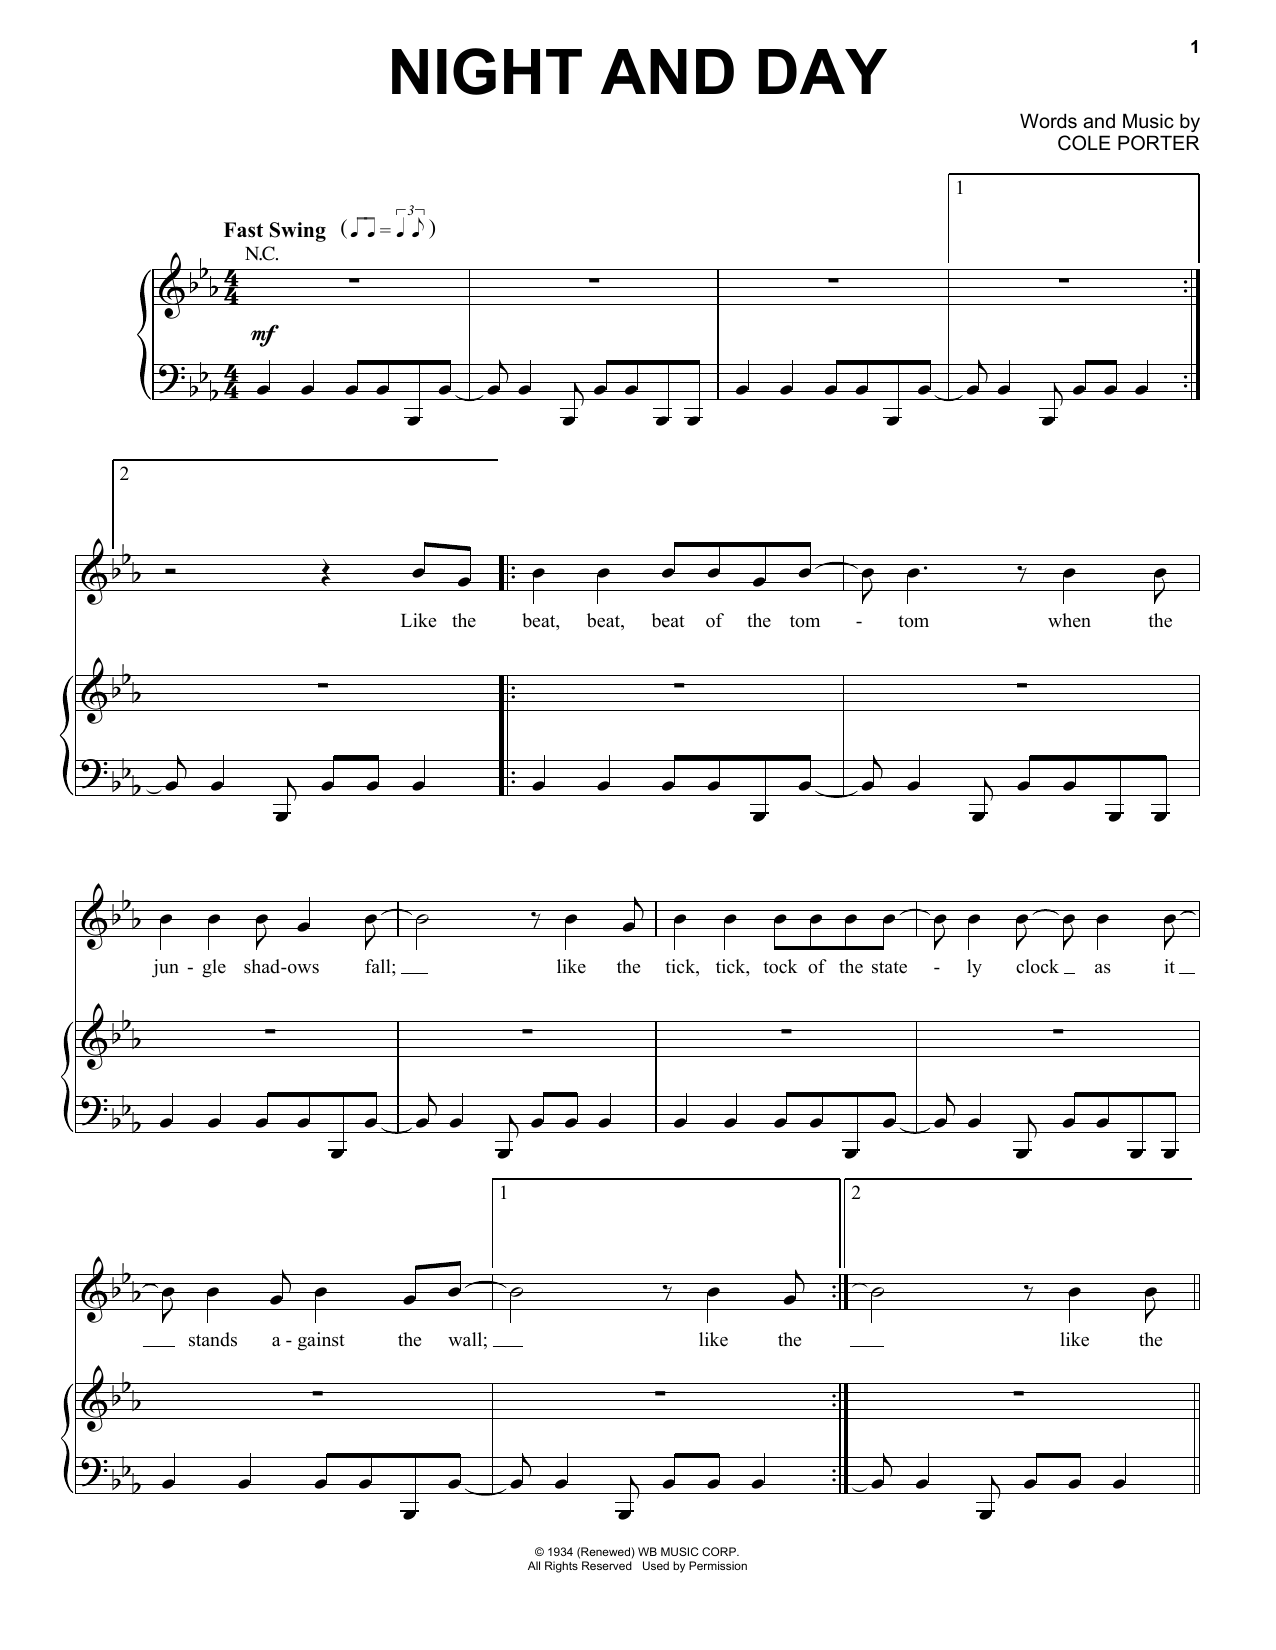 Tony Bennett 'Night And Day' Sheet Music Notes, Chords | Download Printable  Piano & Vocal - SKU: 415364